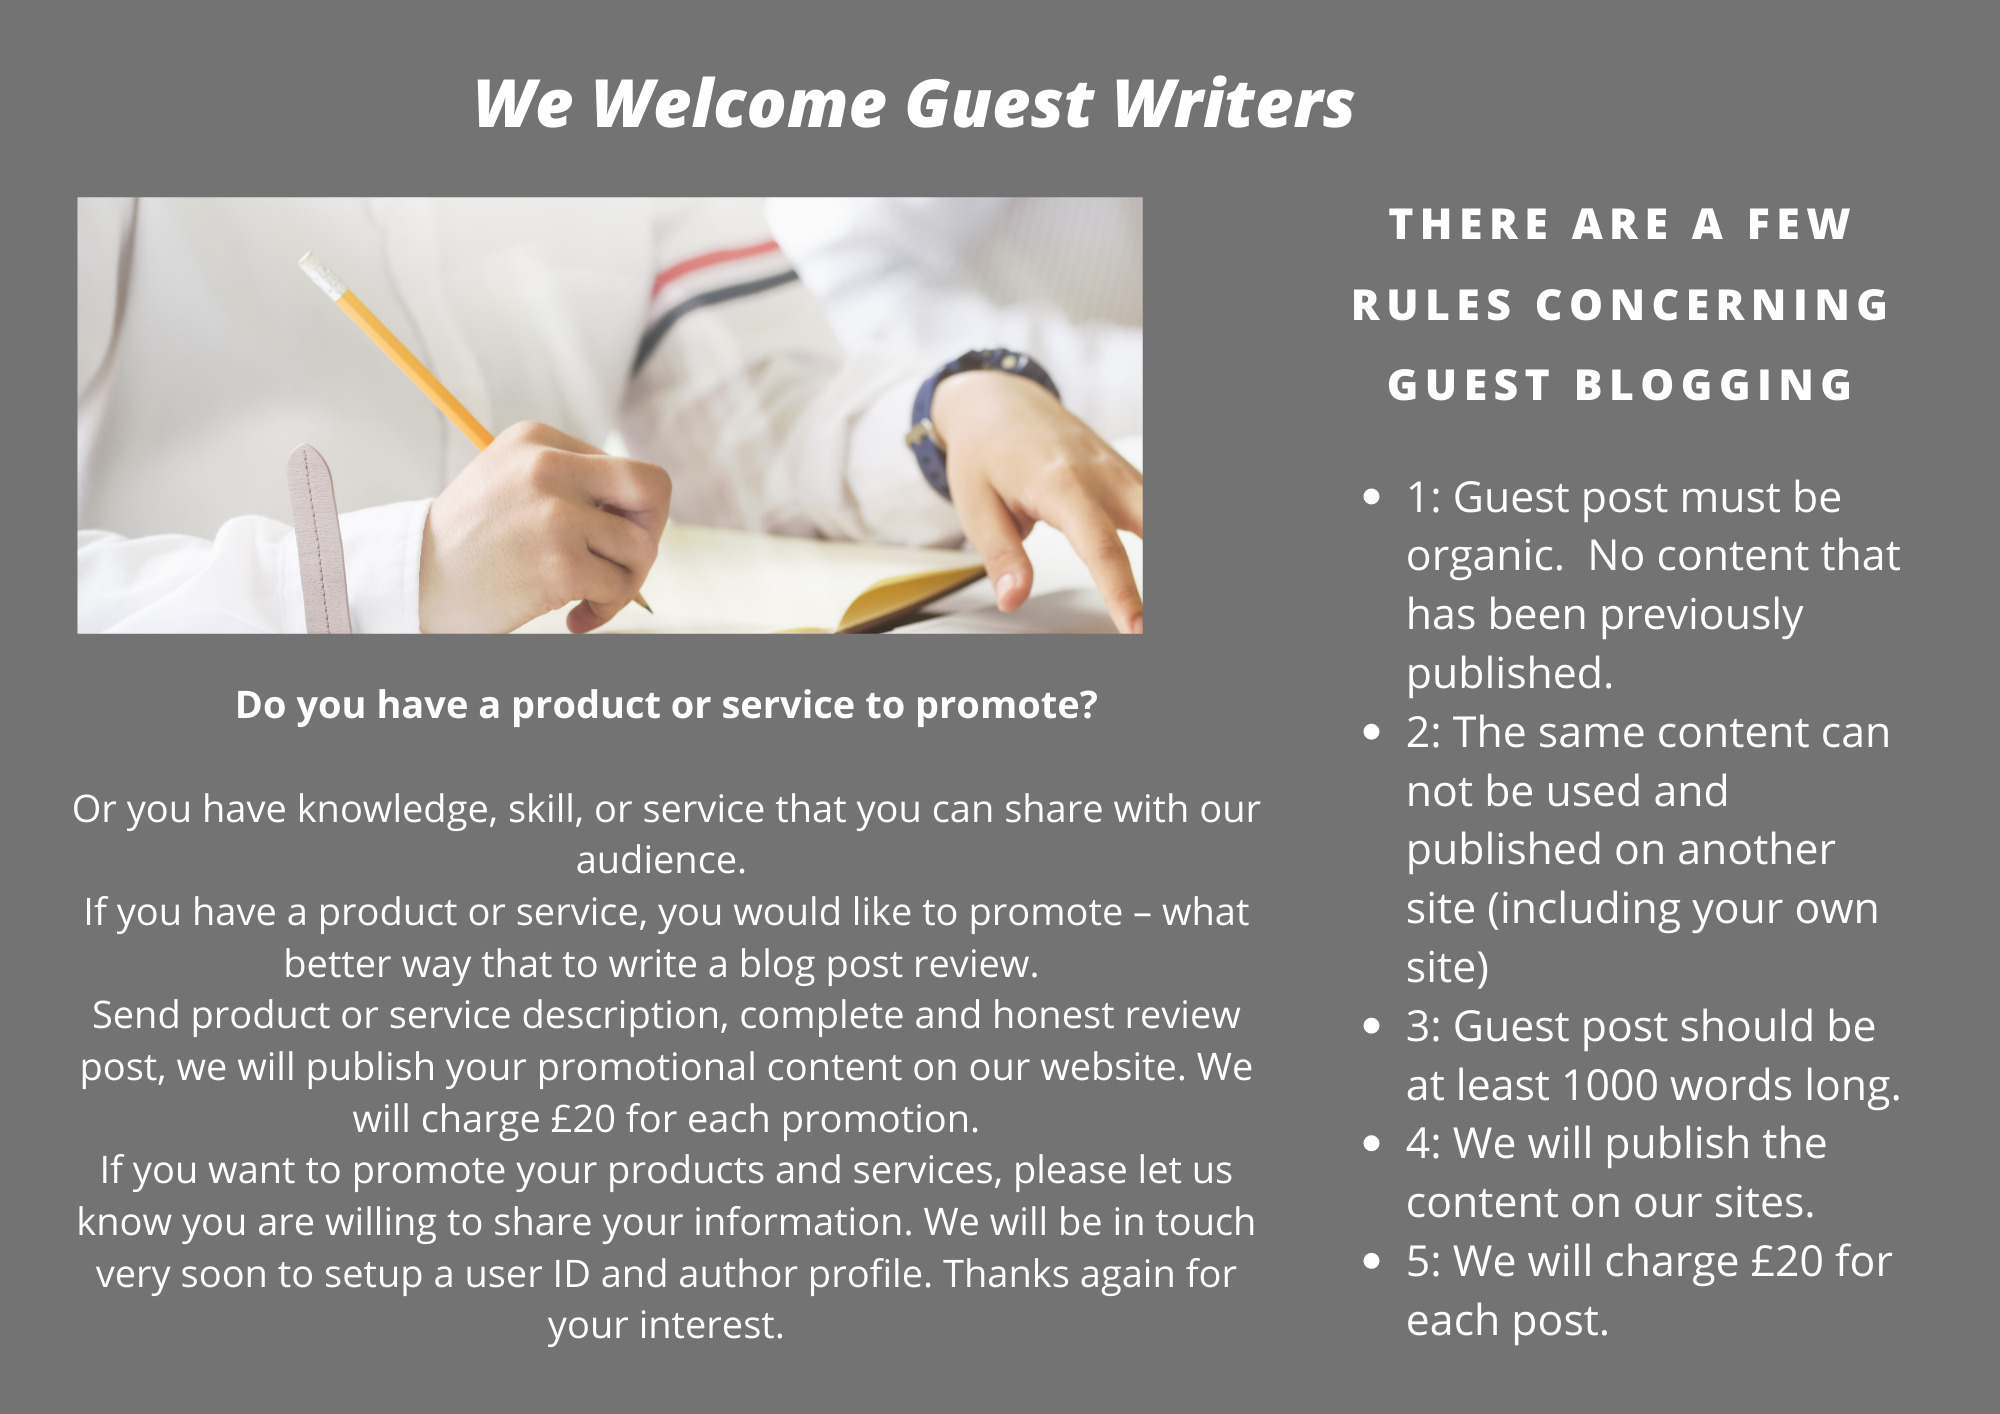 We welcome guest writers